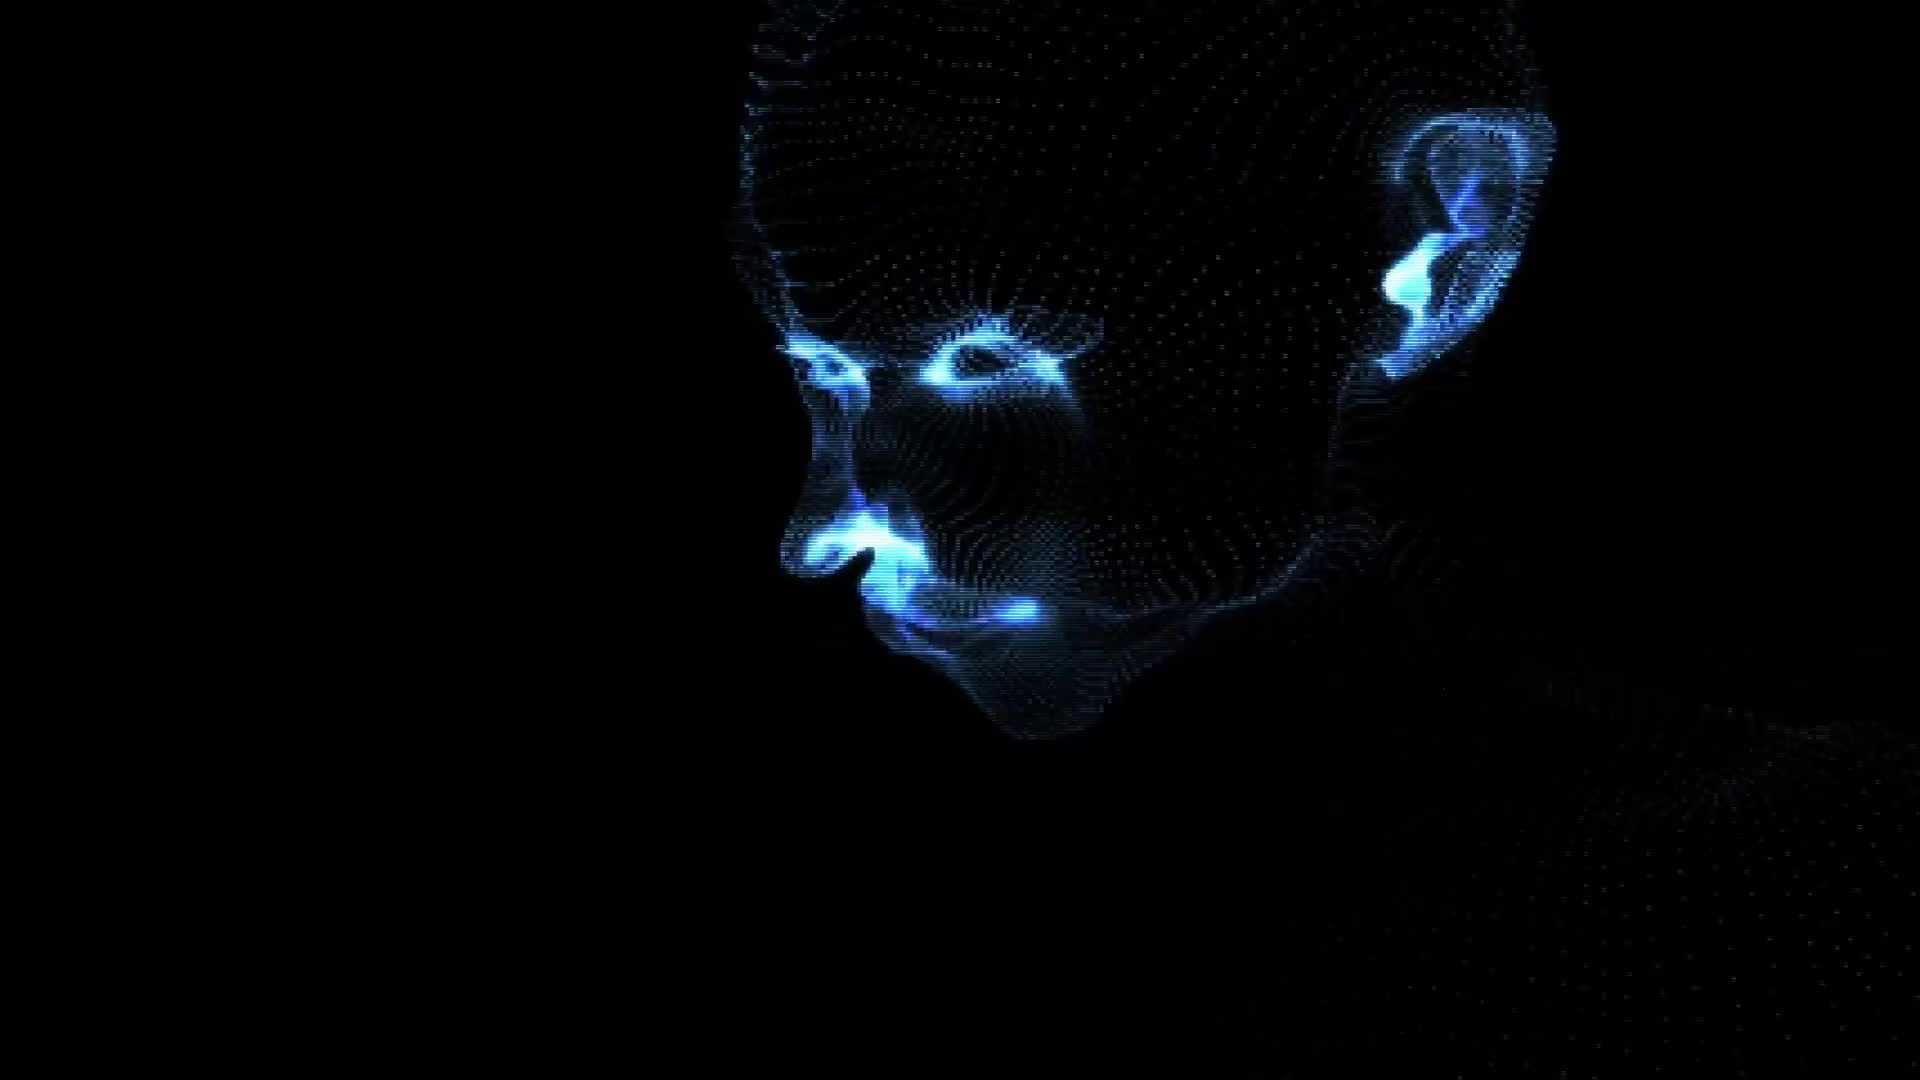 Animation of digital human face